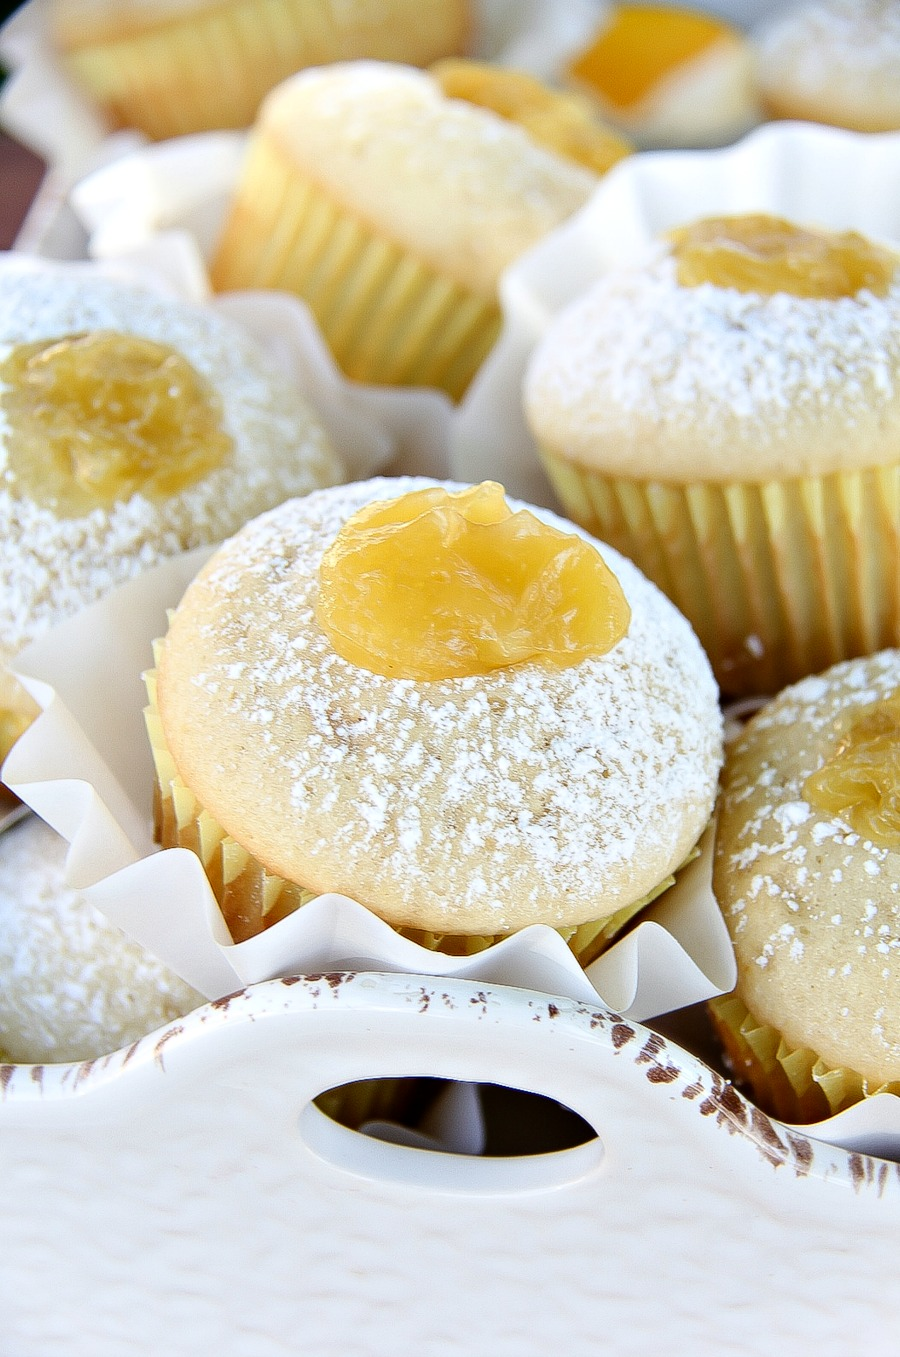 muffins in a white tray with lemon curd on top and confectioners sugar sifted over them